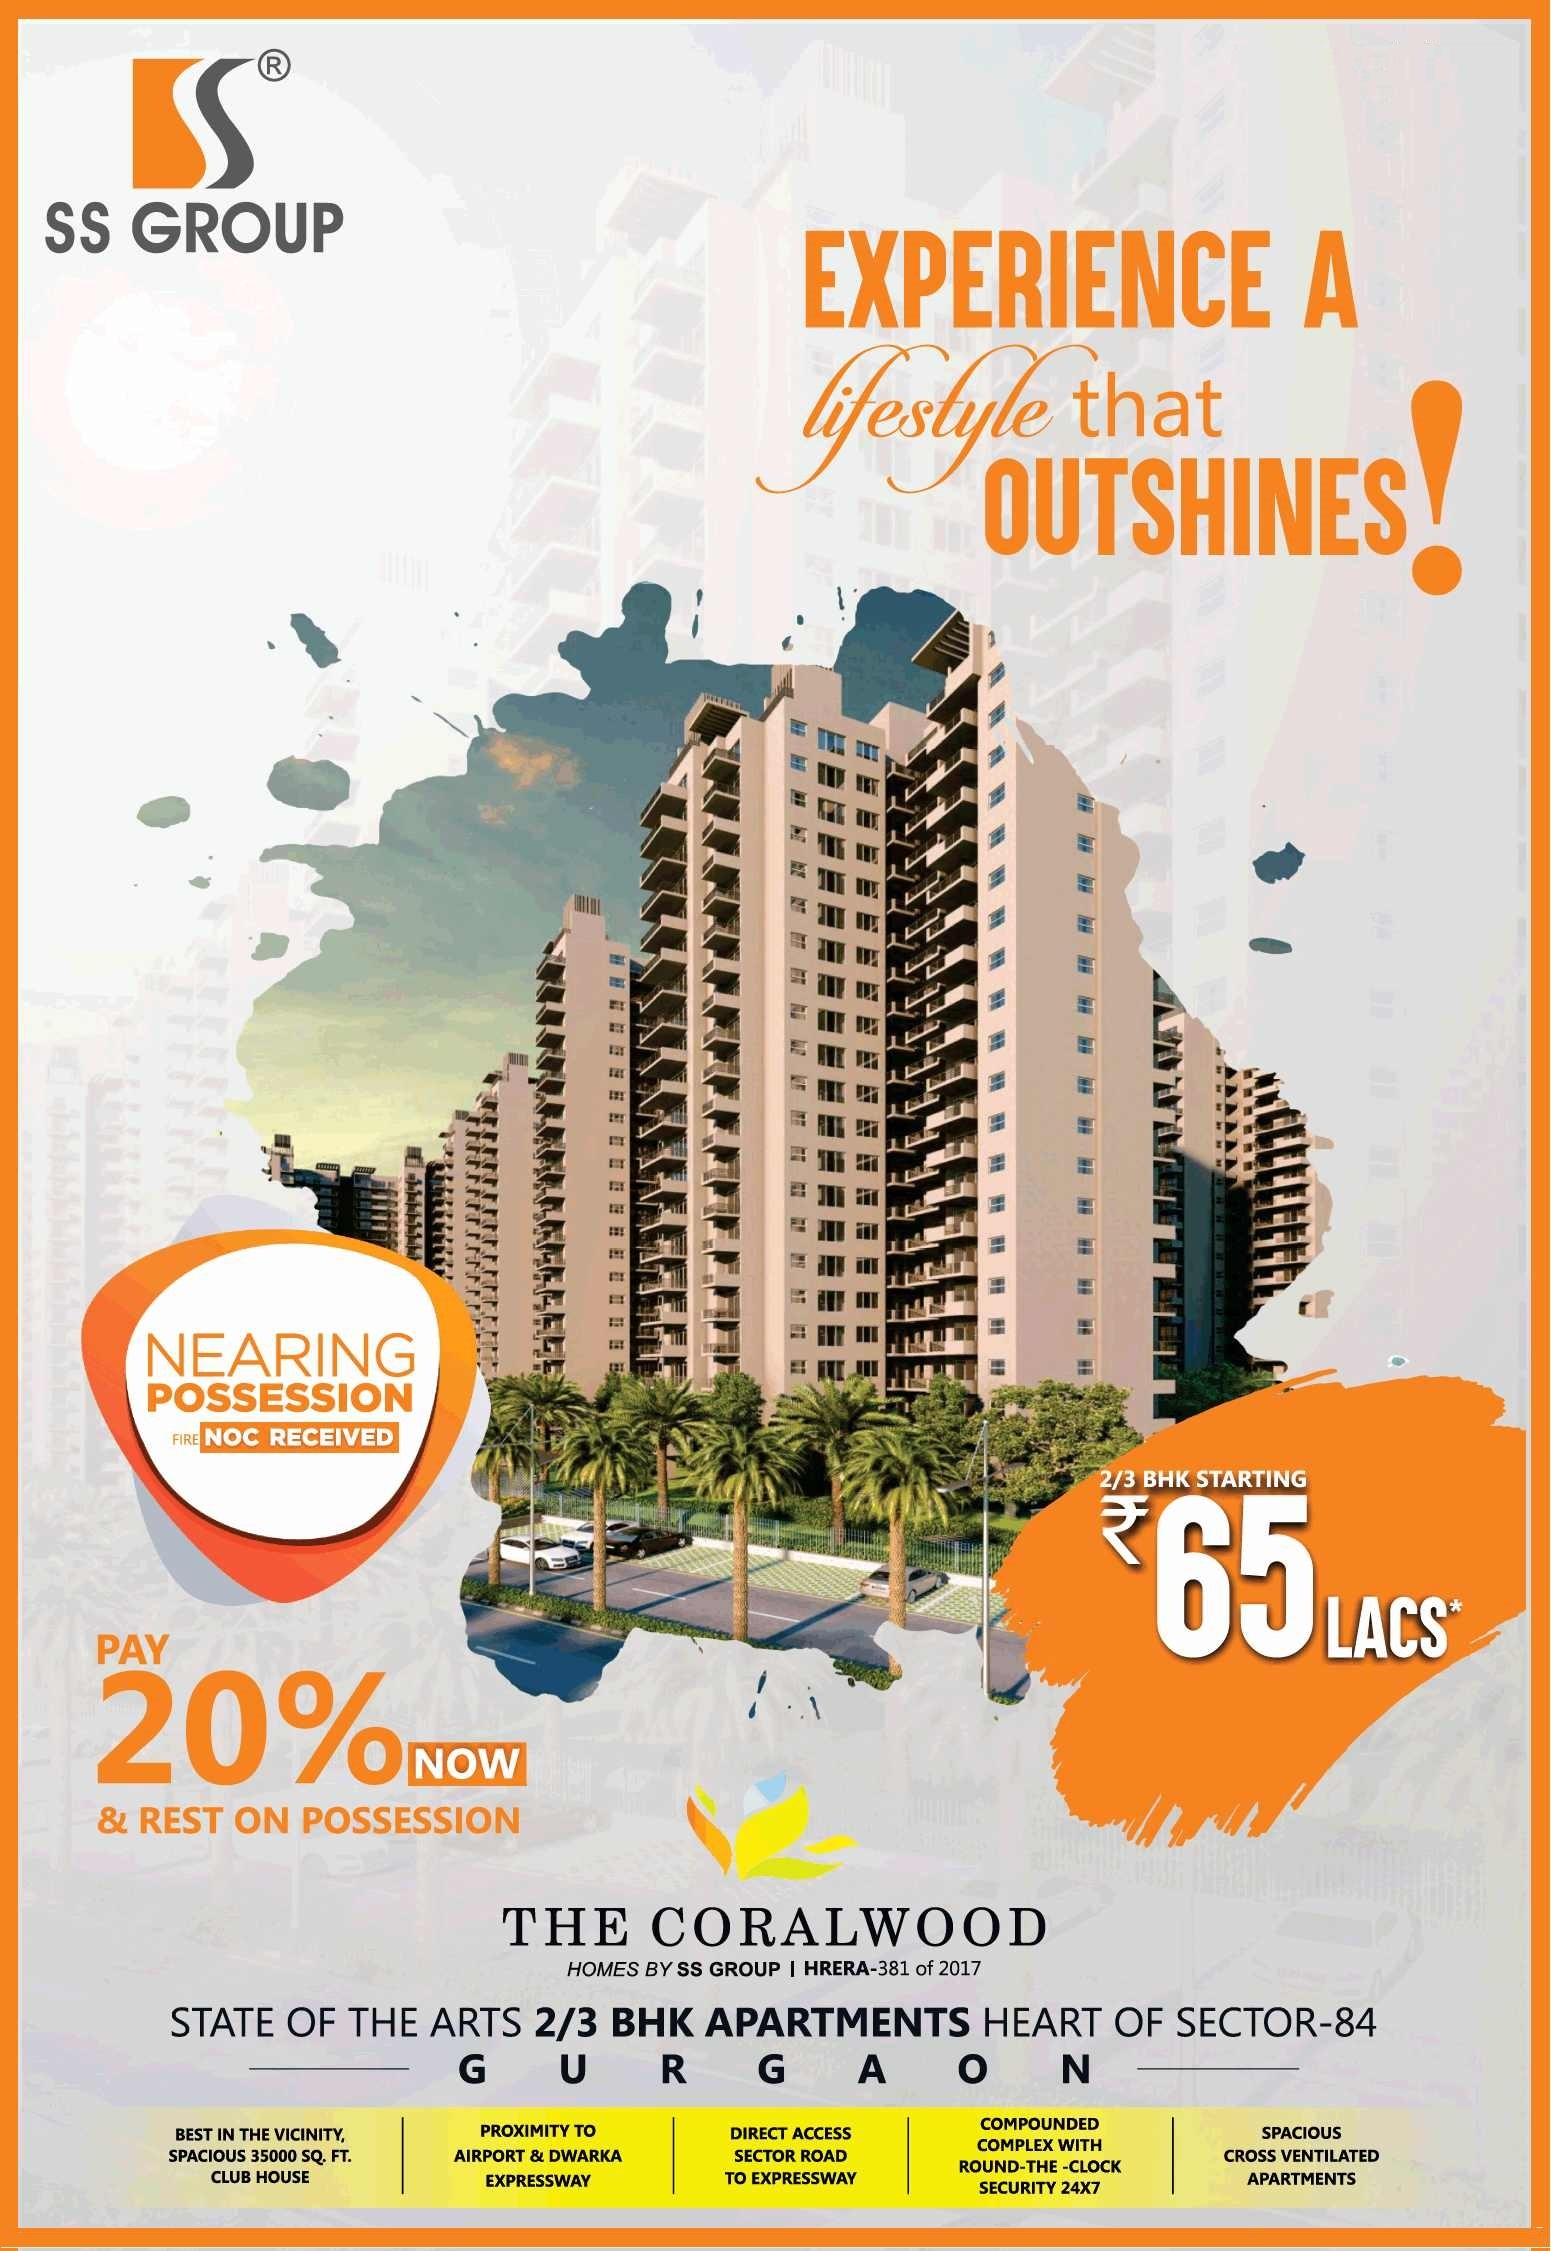 Pay 20 now rest on possession at SS The Coralwood in Gurgaon